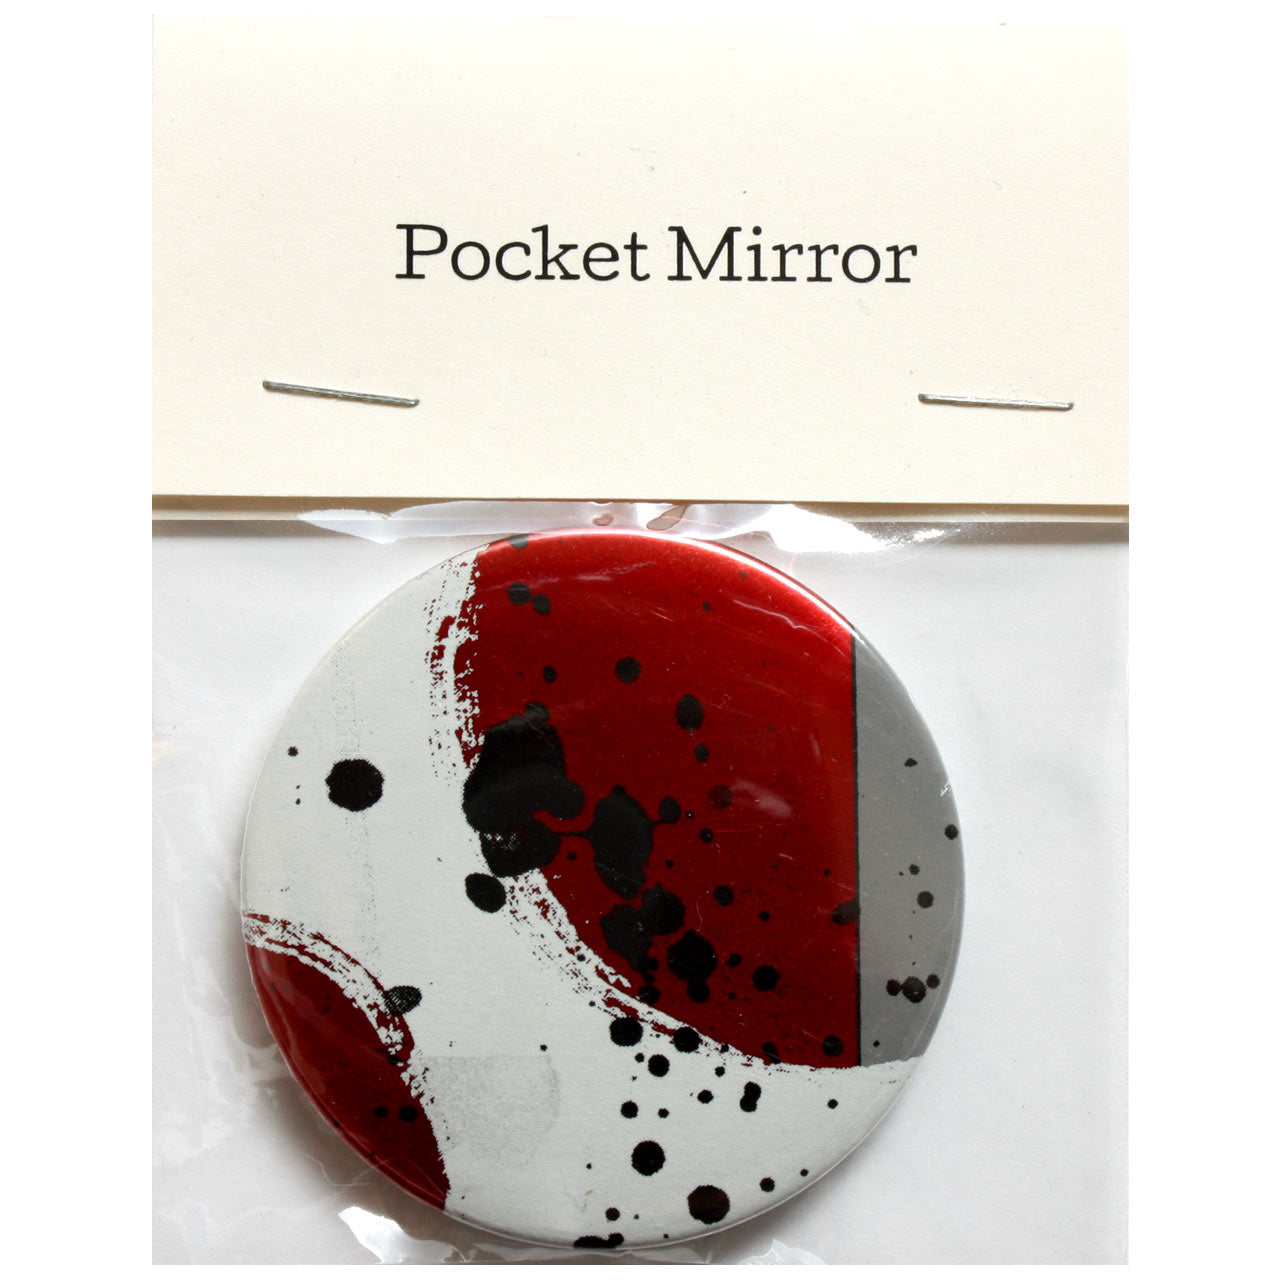 Pocket Mirror #8